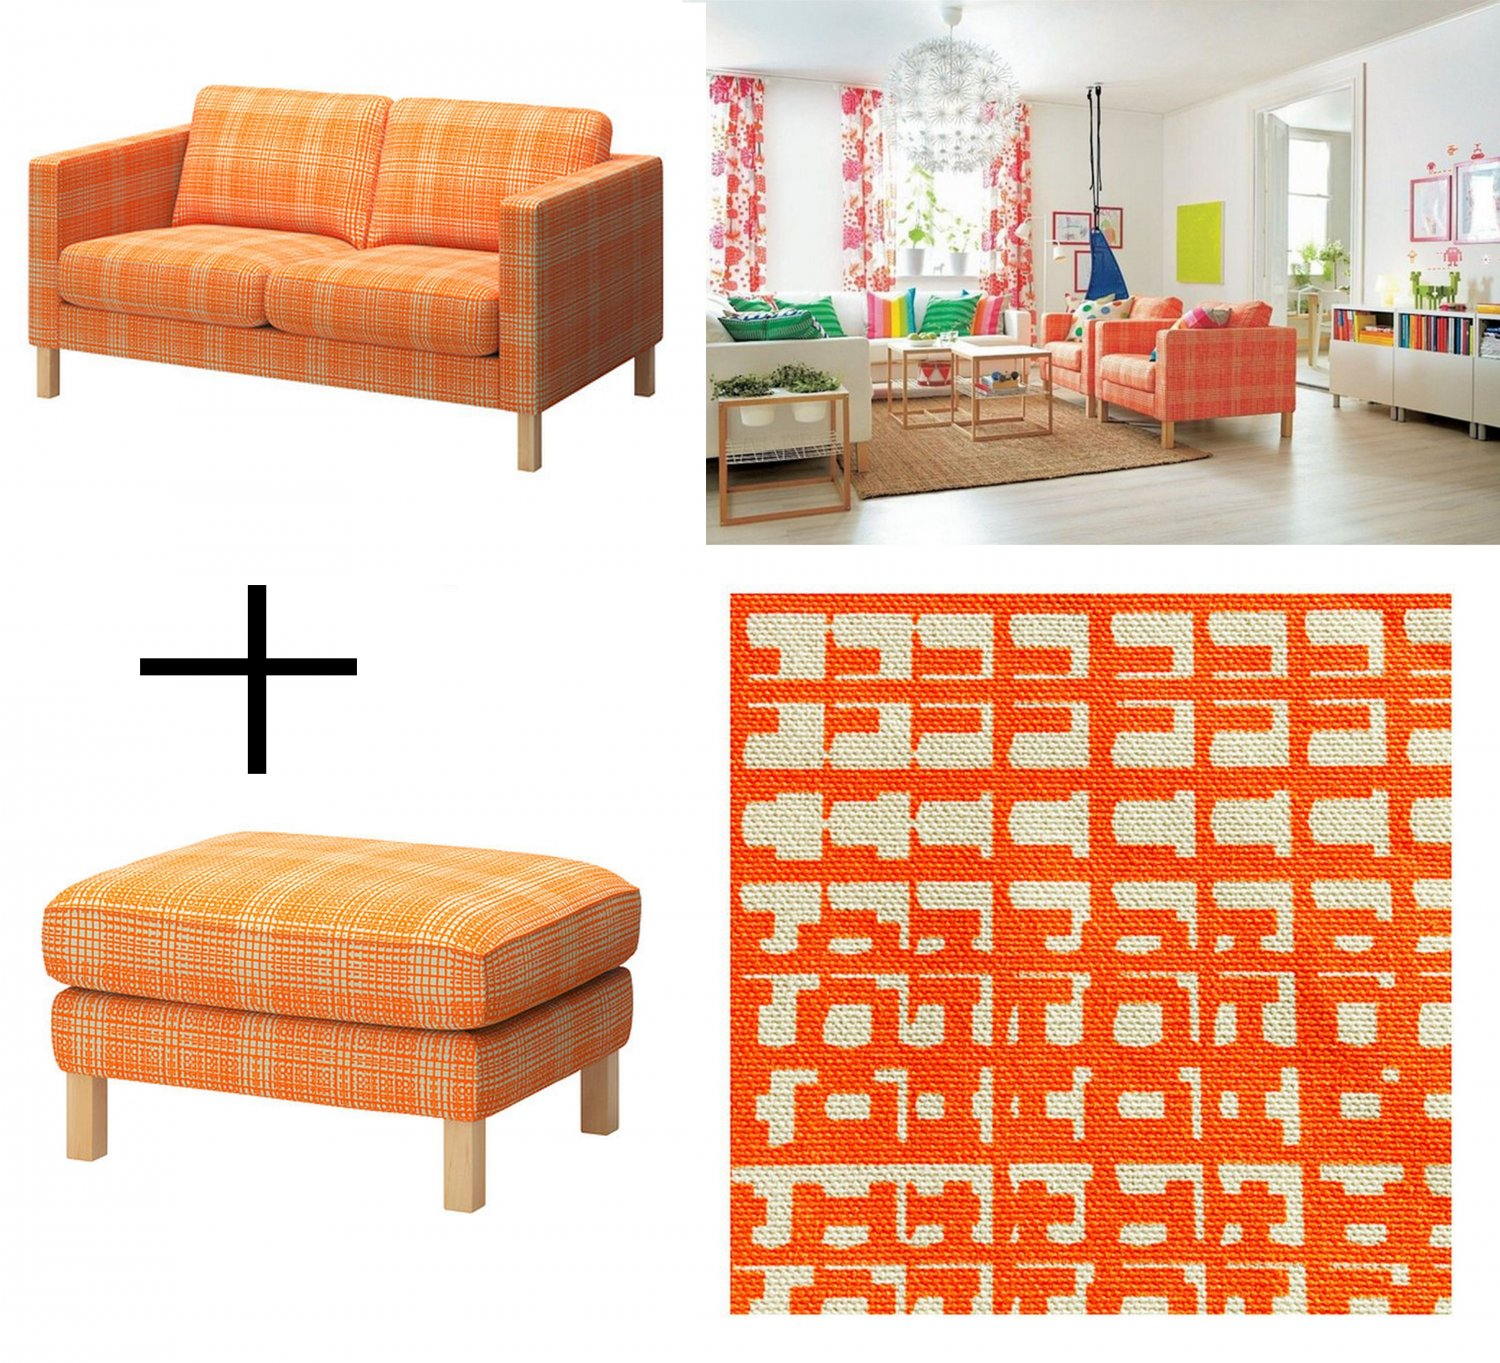 Ikea Karlstad 2 Seat Sofa And Footstool Slipcover Loveseat Ottoman Cover Husie Orange Print